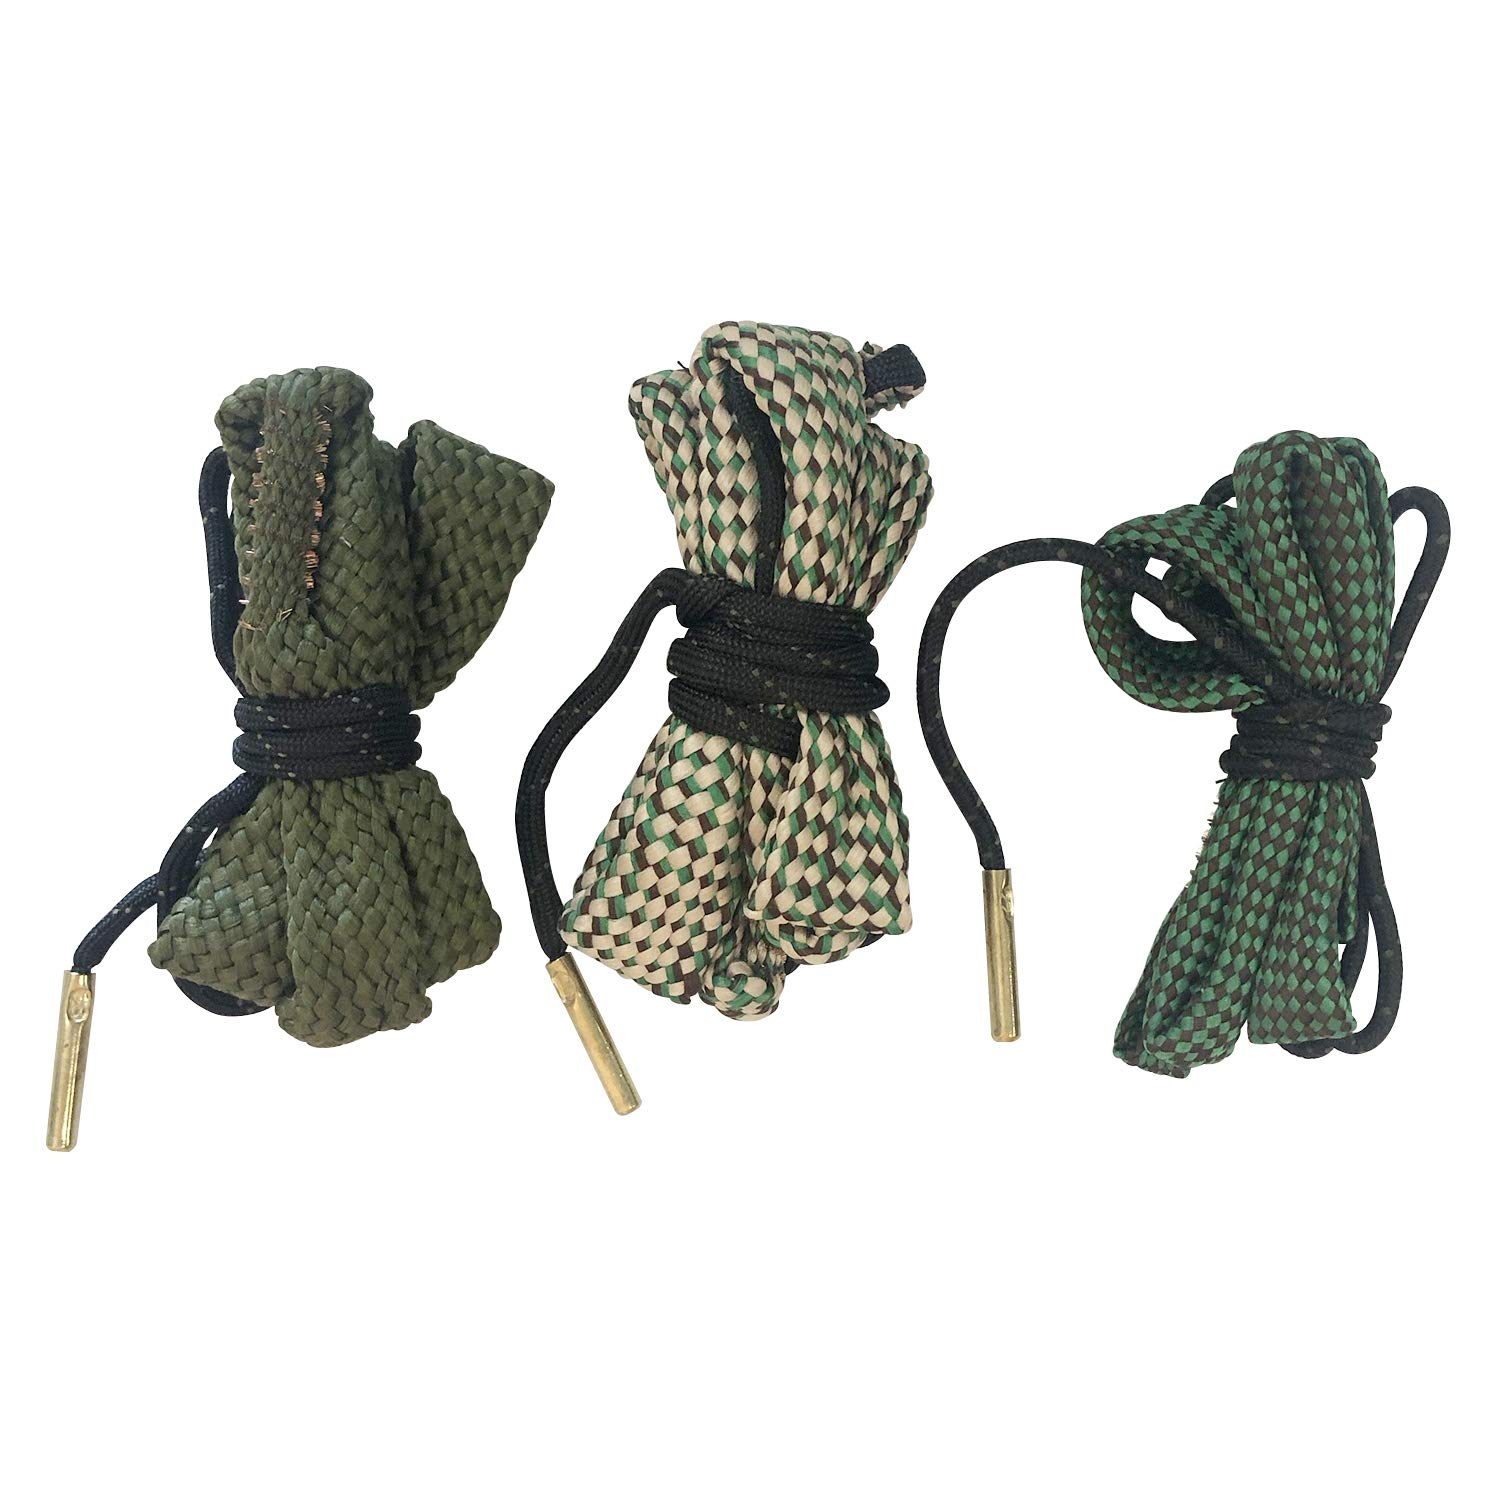 STEELEAGLE Bore Snake 3 Pack -223 5.56 9mm .357 .38 .380 30-30 30-06 .308 .30 Caliber Rifles and Pistols Cleaning Kit by STEELEAGLE